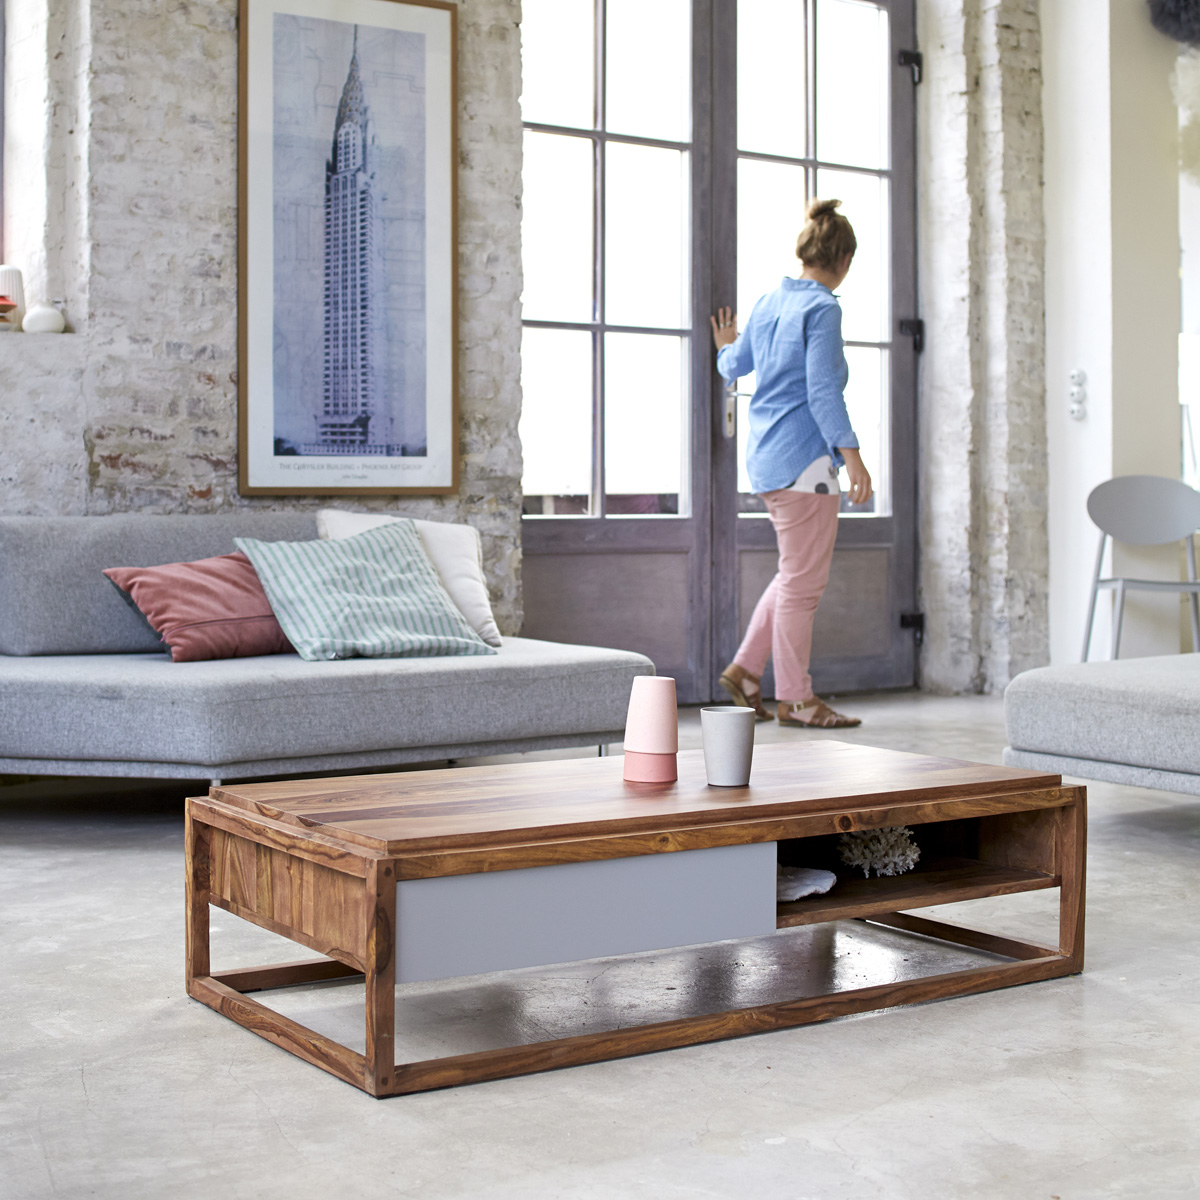 53 id es de table basse d co pour votre salon - Table basse design solde ...